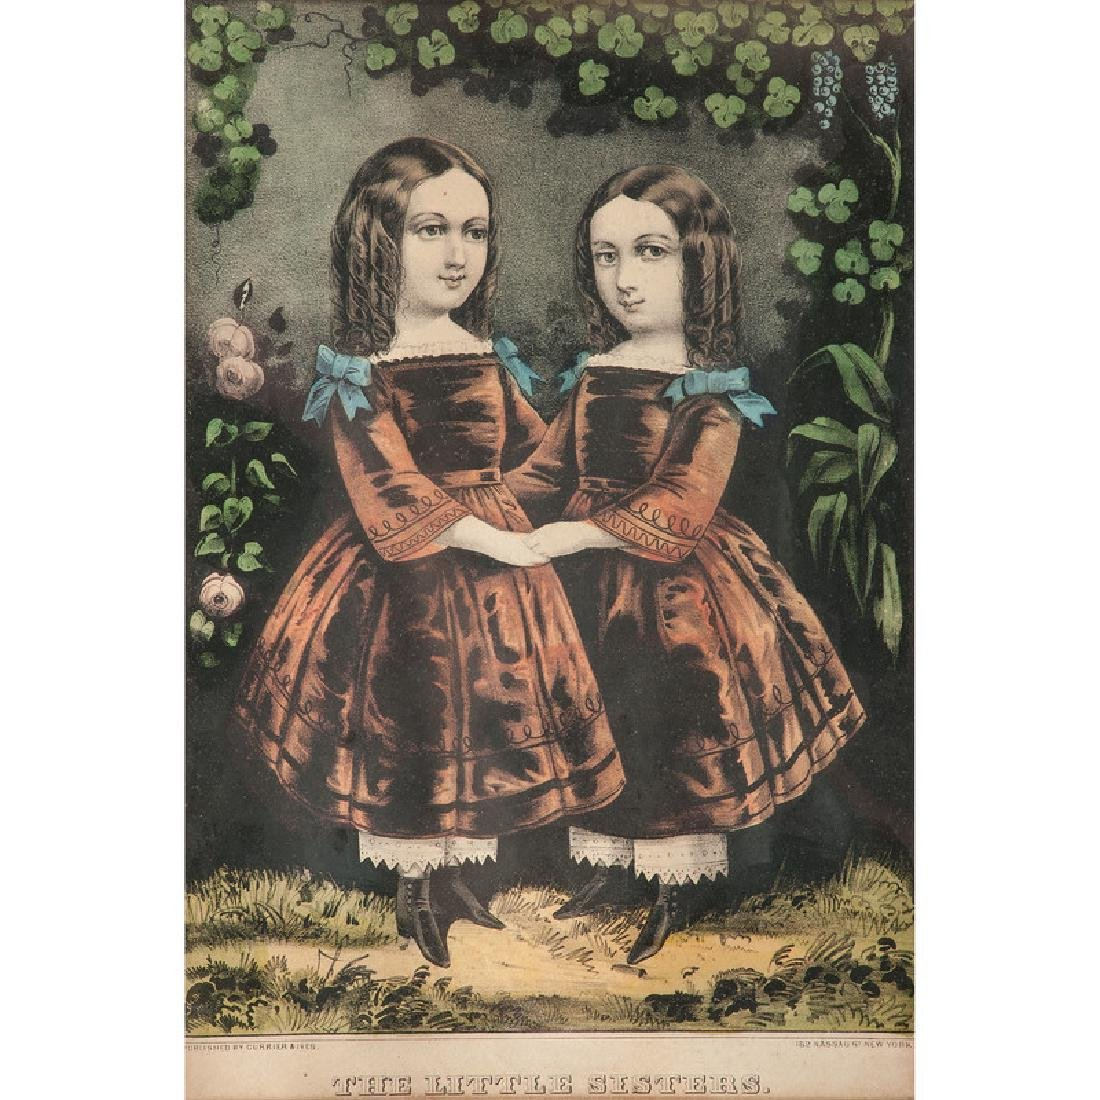 Currier & Ives and Kellogg Hand-Colored Lithographs,